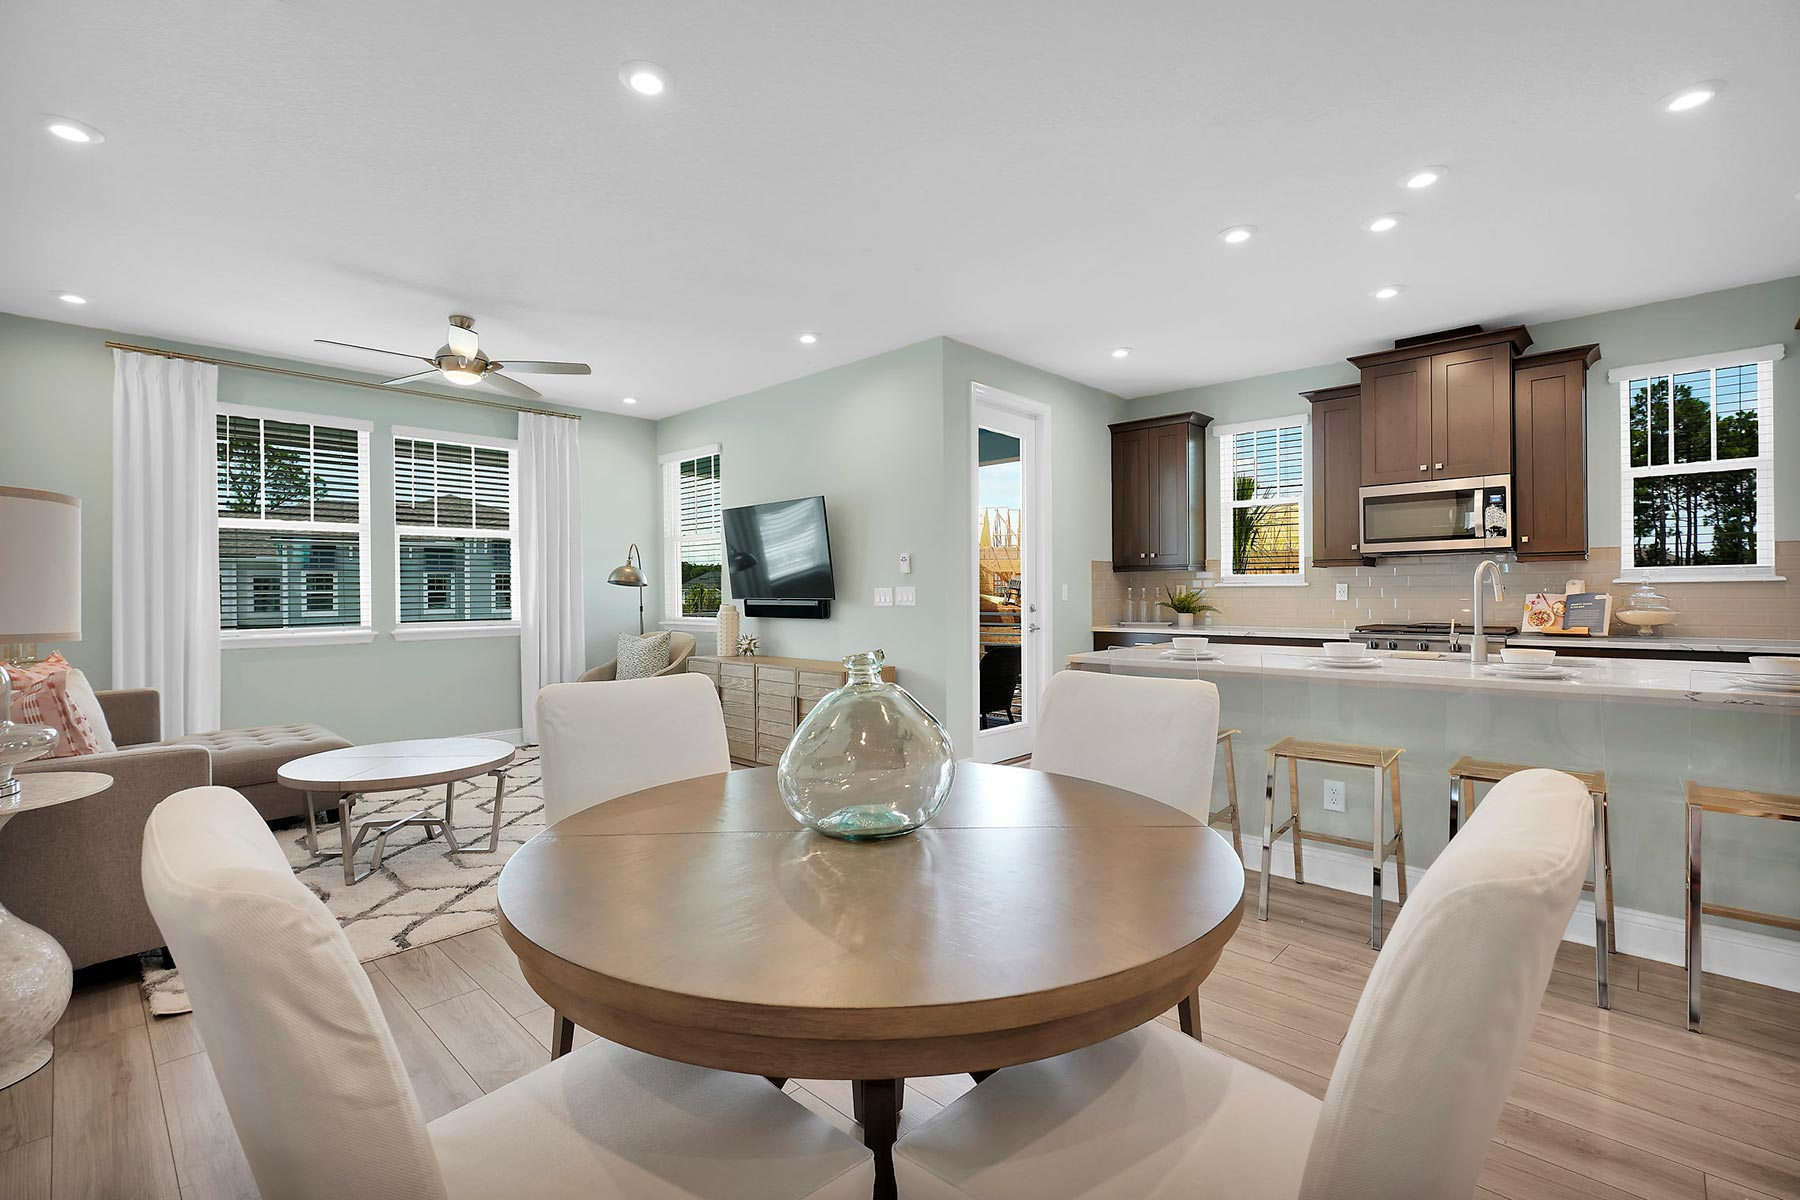 Kai Plan Dining at Pablo Cove in Jacksonville Florida by Mattamy Homes